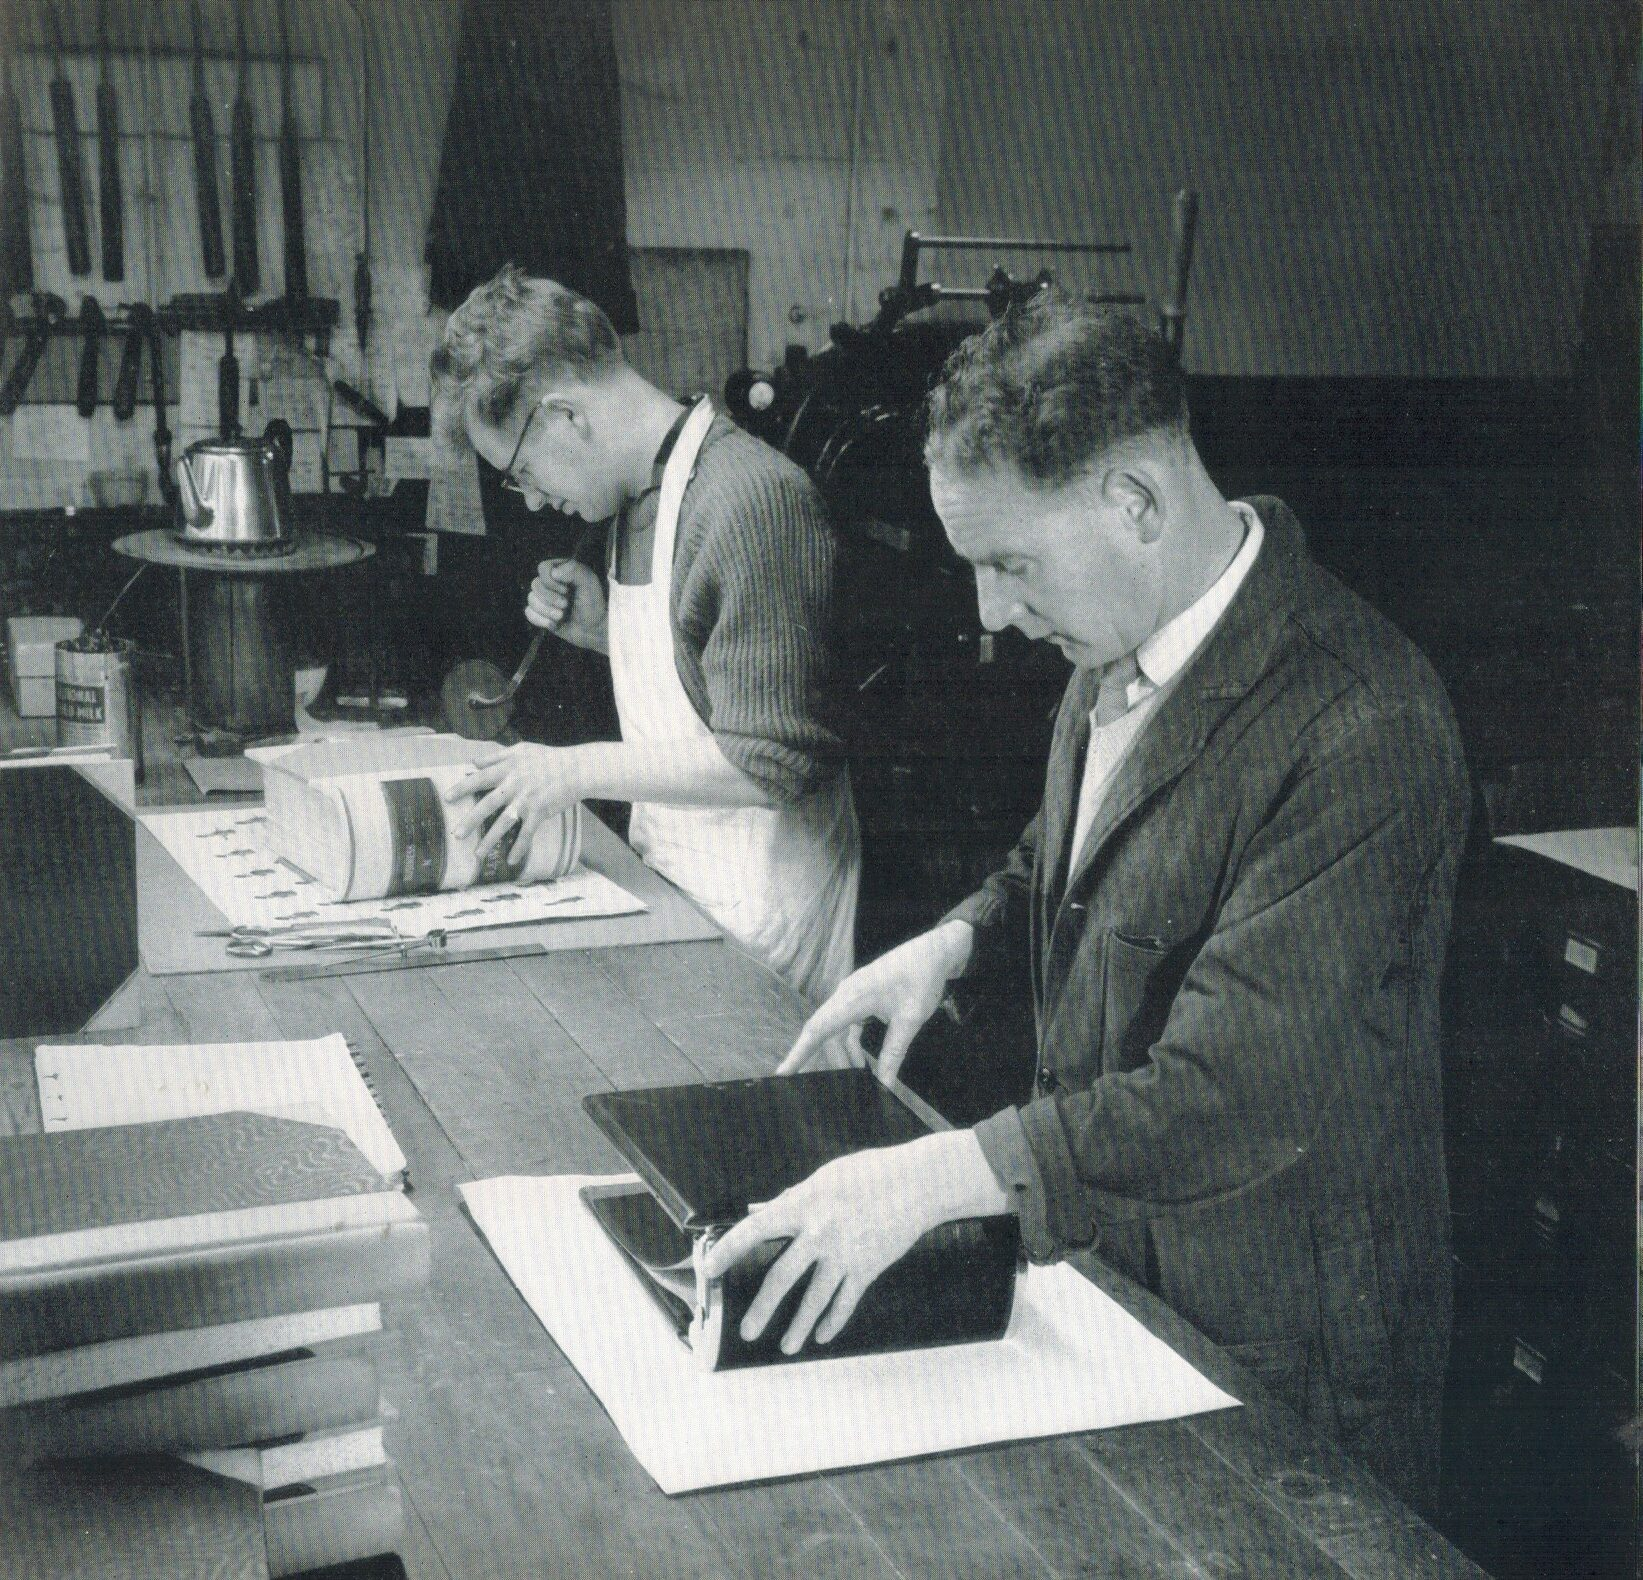 Bookbinding by hand